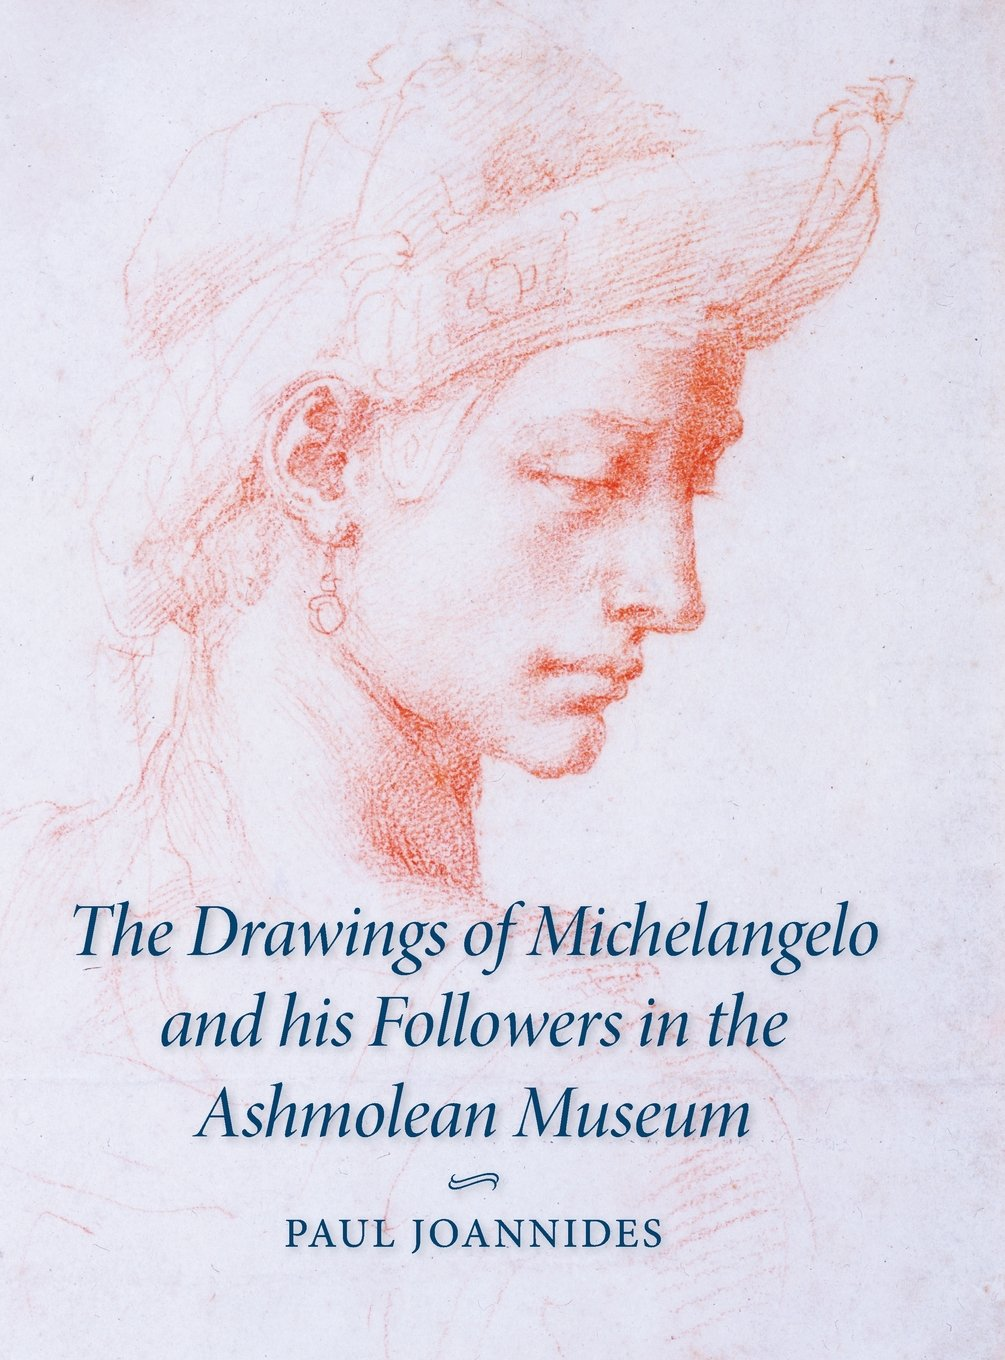 selection of drawings by michelangelo in the ashmolean museum